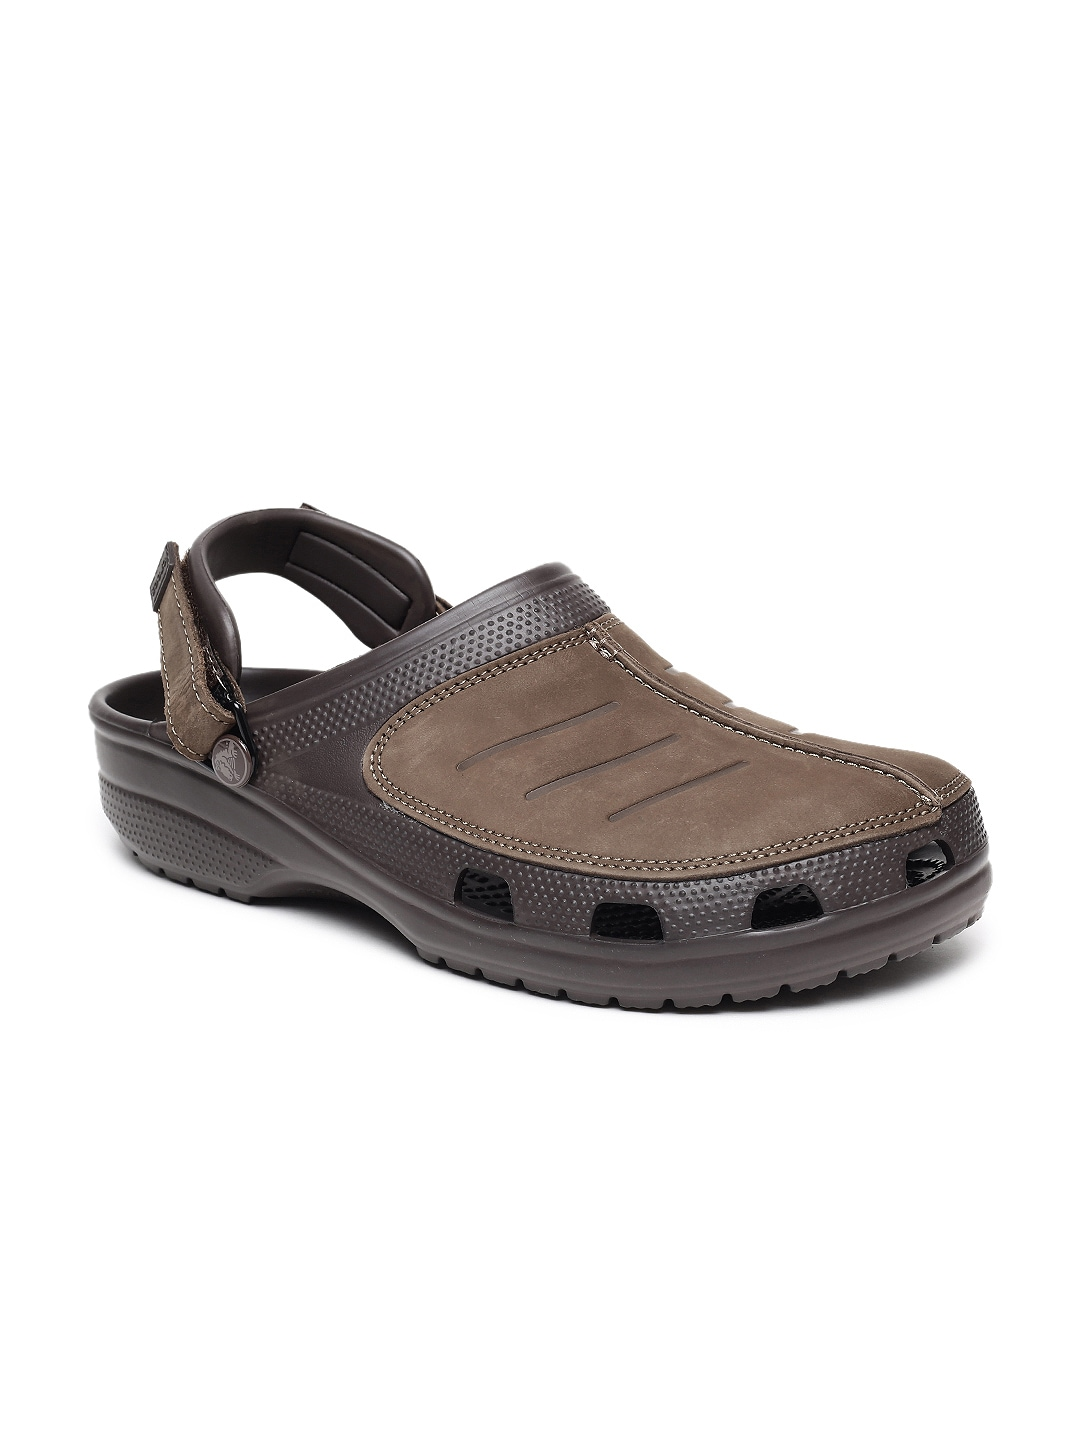 cdf144b3437 Crocs Shoes Online - Buy Crocs Flip Flops   Sandals Online in India - Myntra